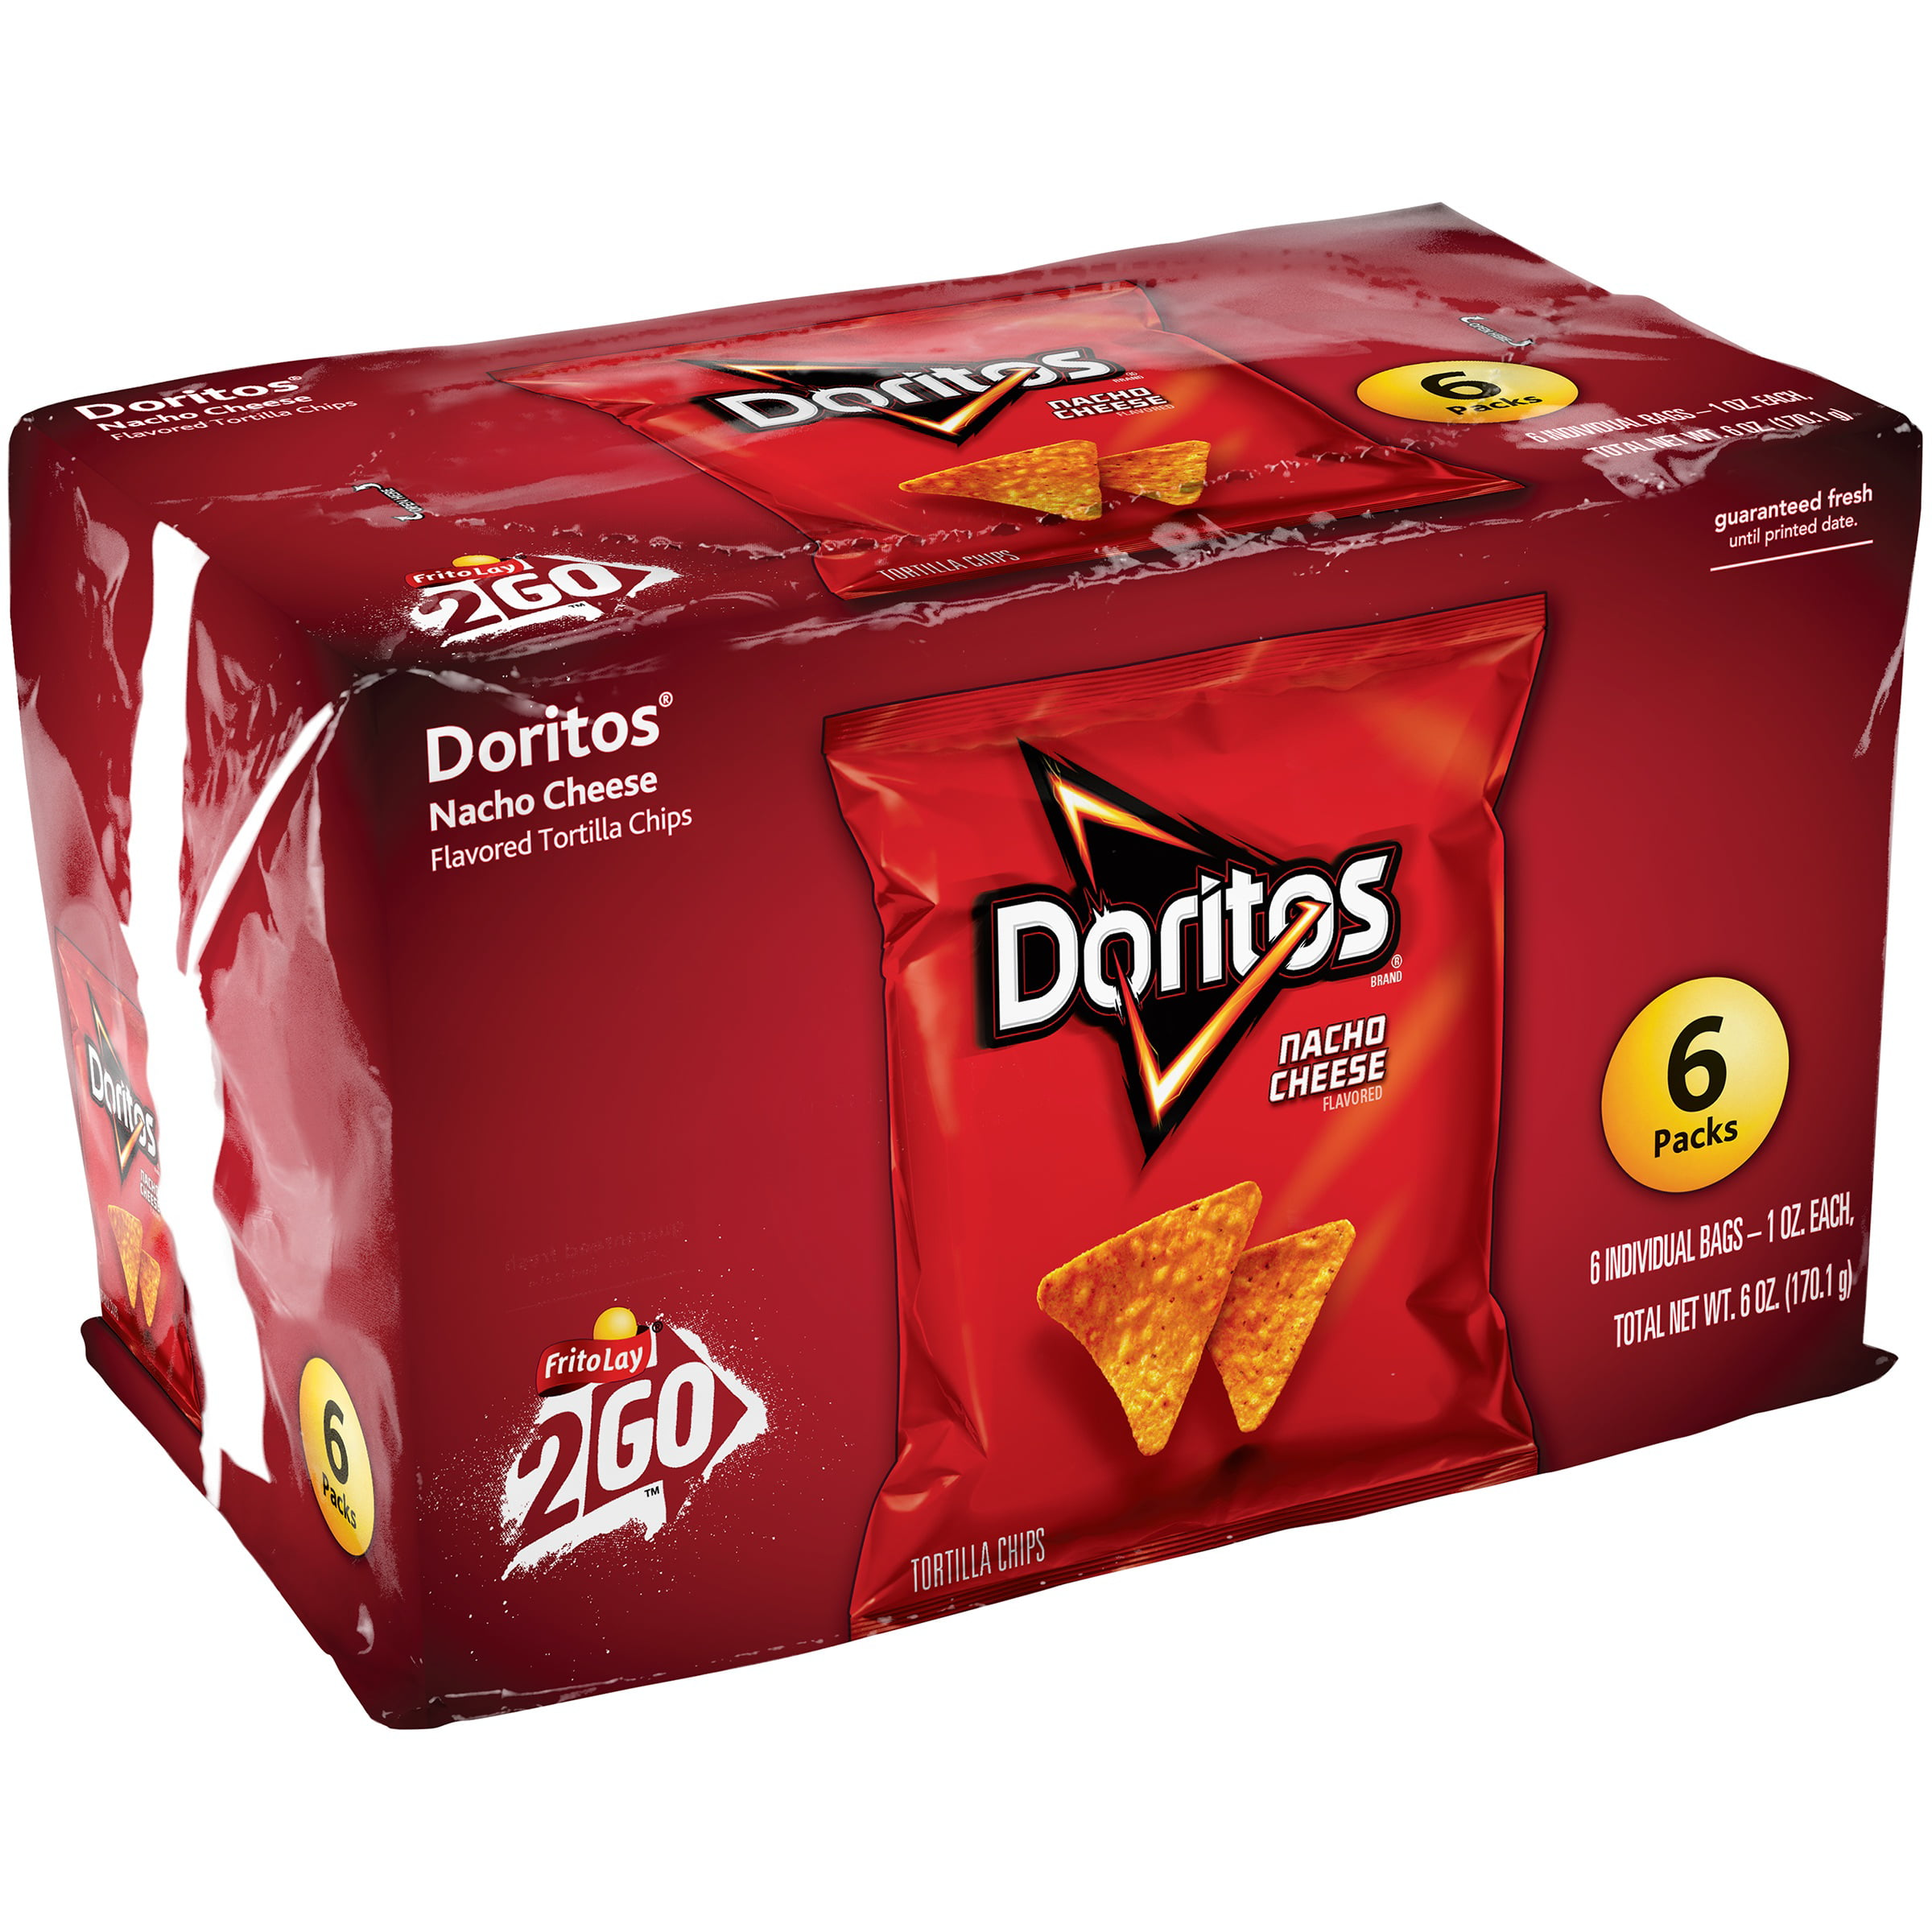 doritos nacho cheese flavored tortilla chips, 6 count, 1 oz bags